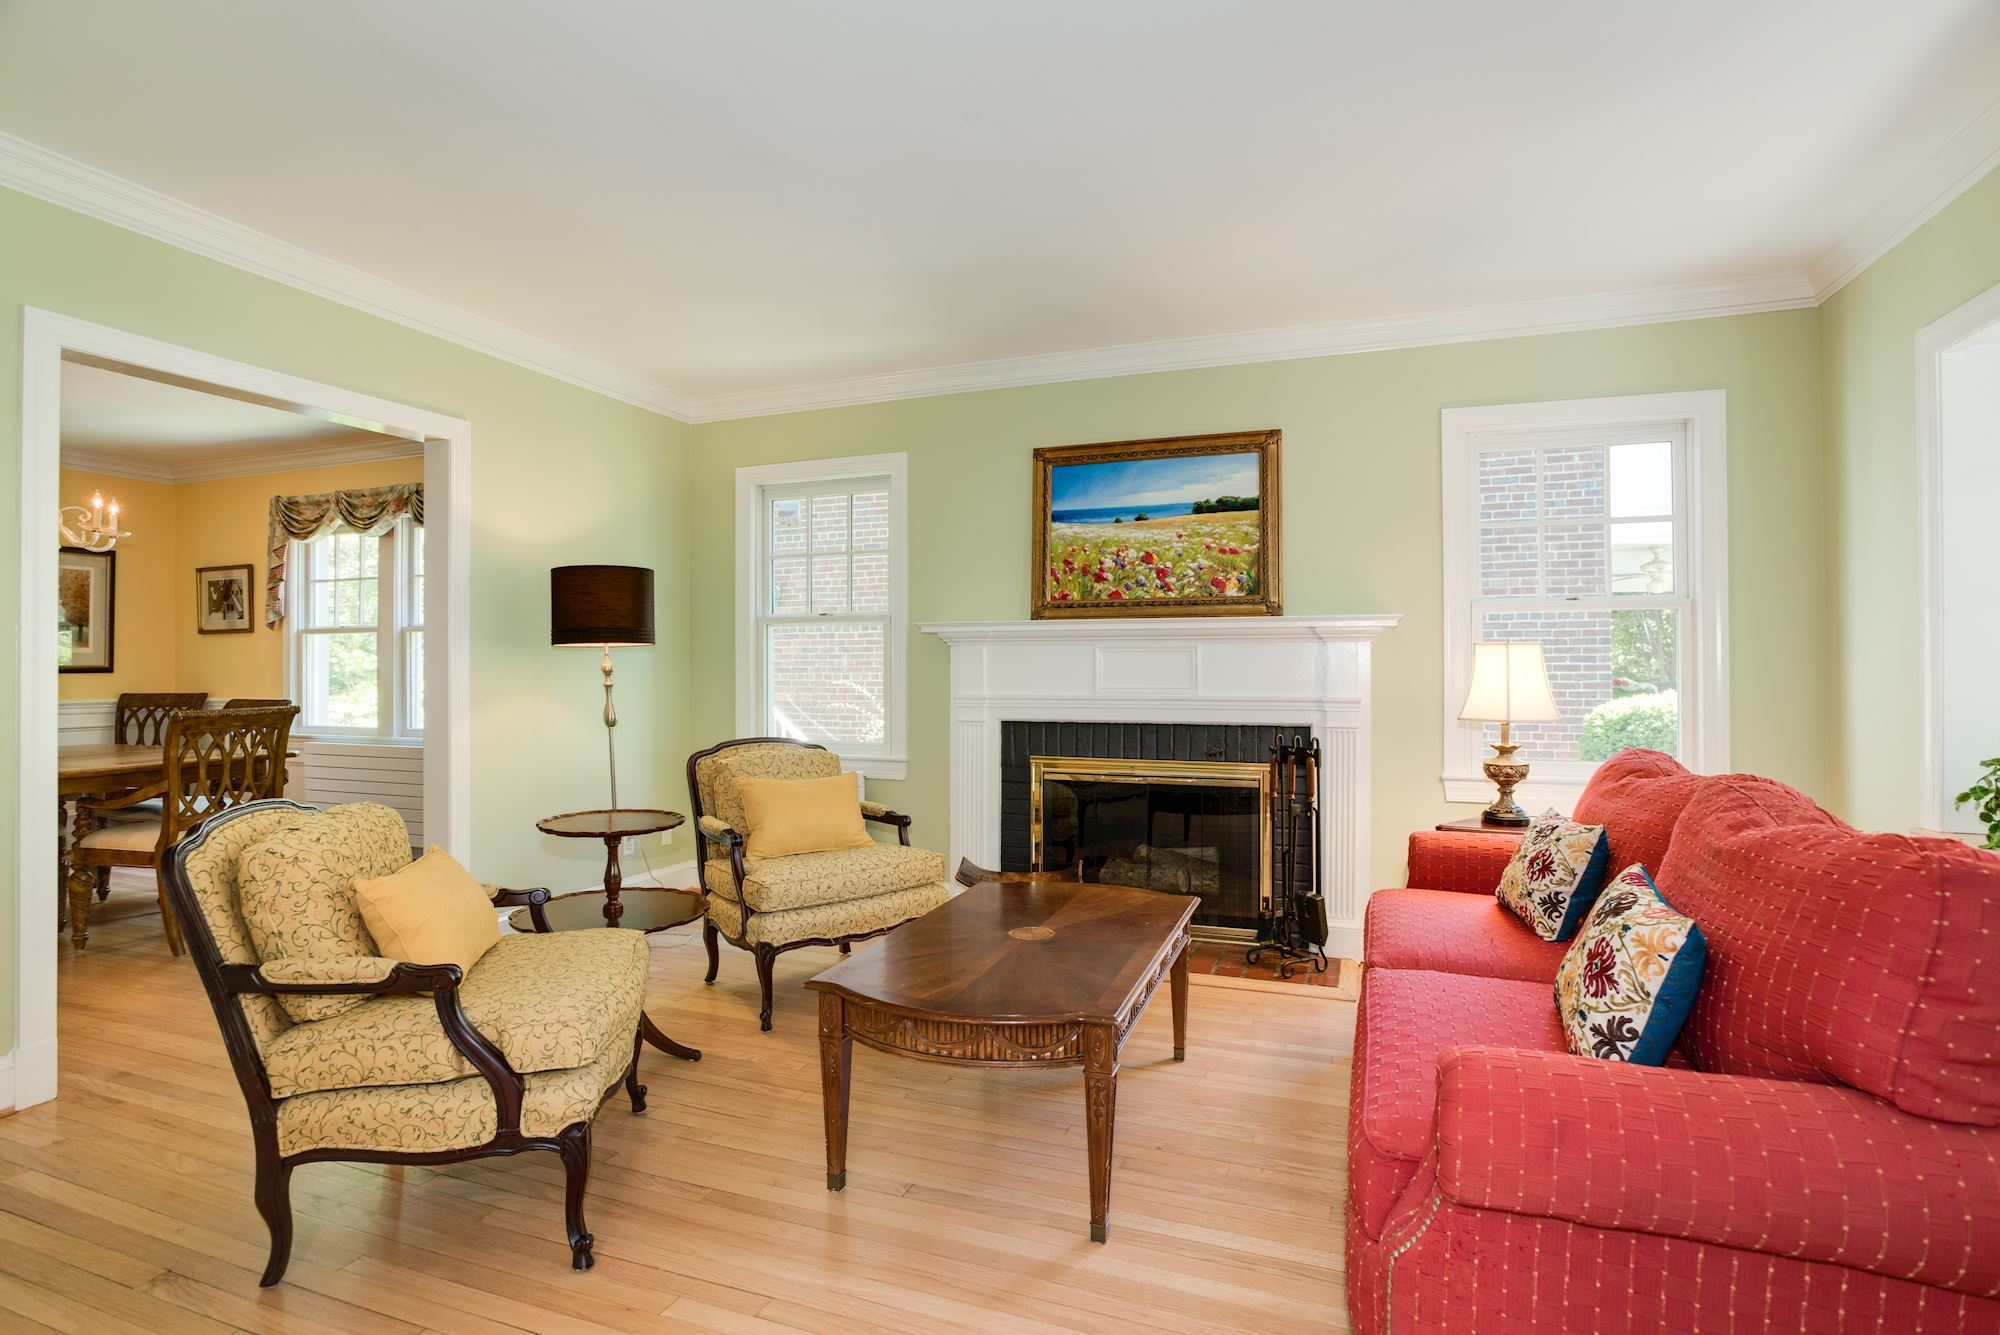 HOMEVISIT VIRTUAL TOUR 6224 30TH ST NW WASHINGTON DC 20015 Listed By KIMBERLY CESTARI